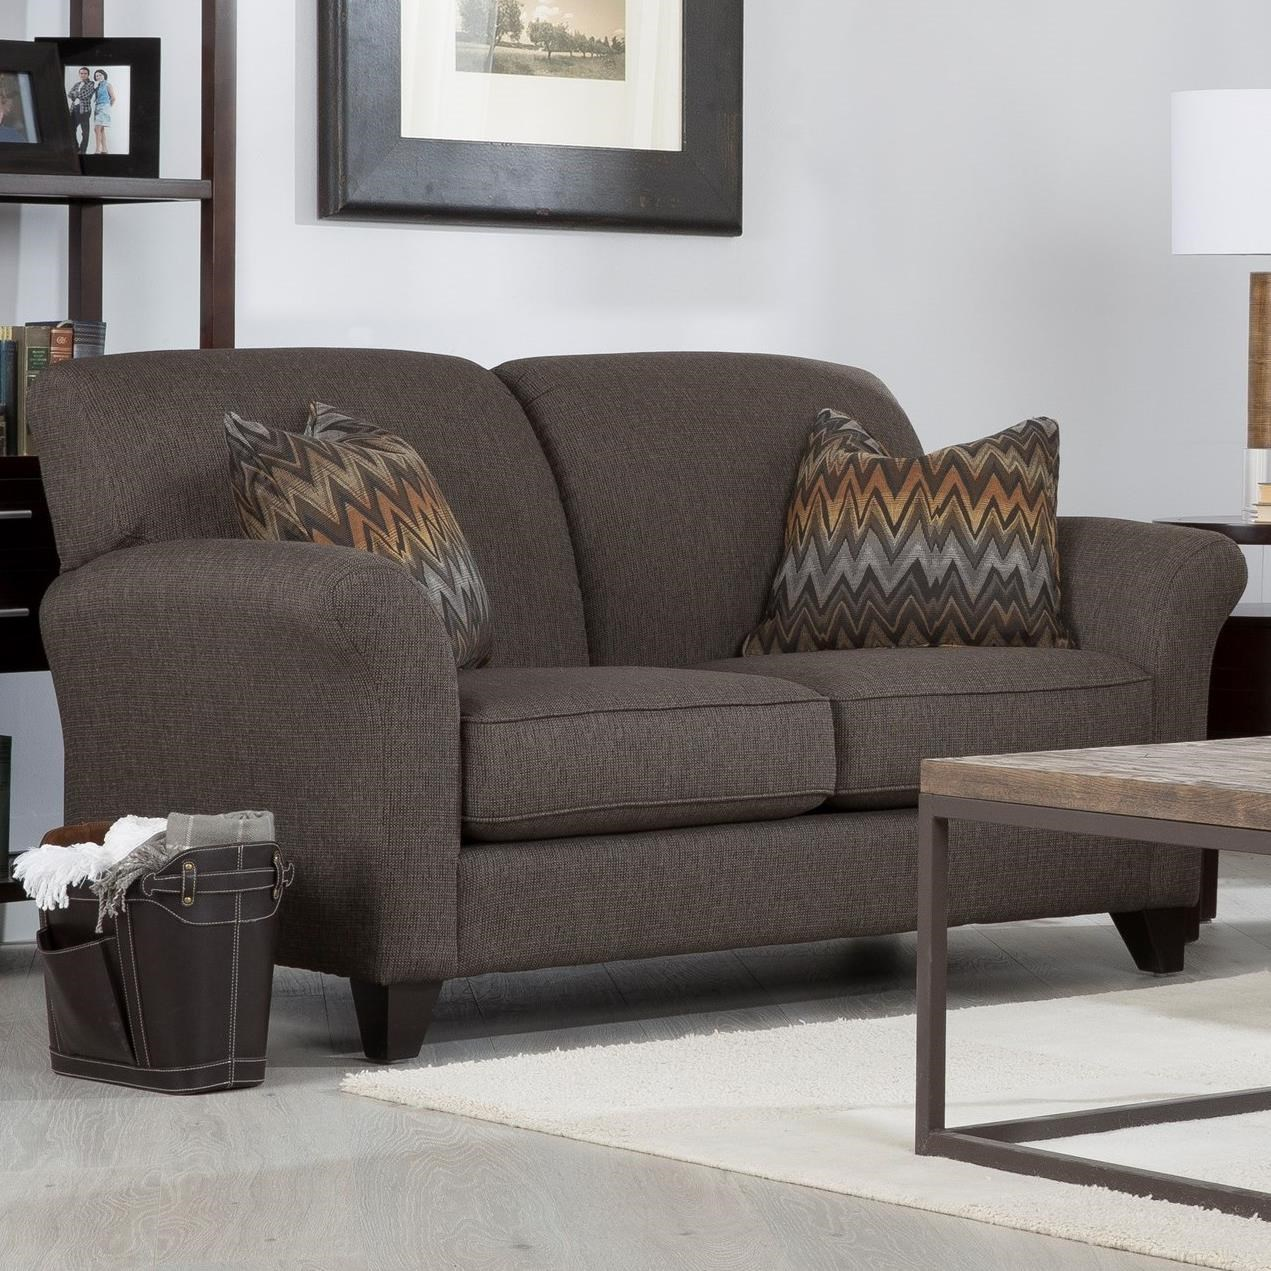 2263 Loveseat by Decor-Rest at Rooms for Less